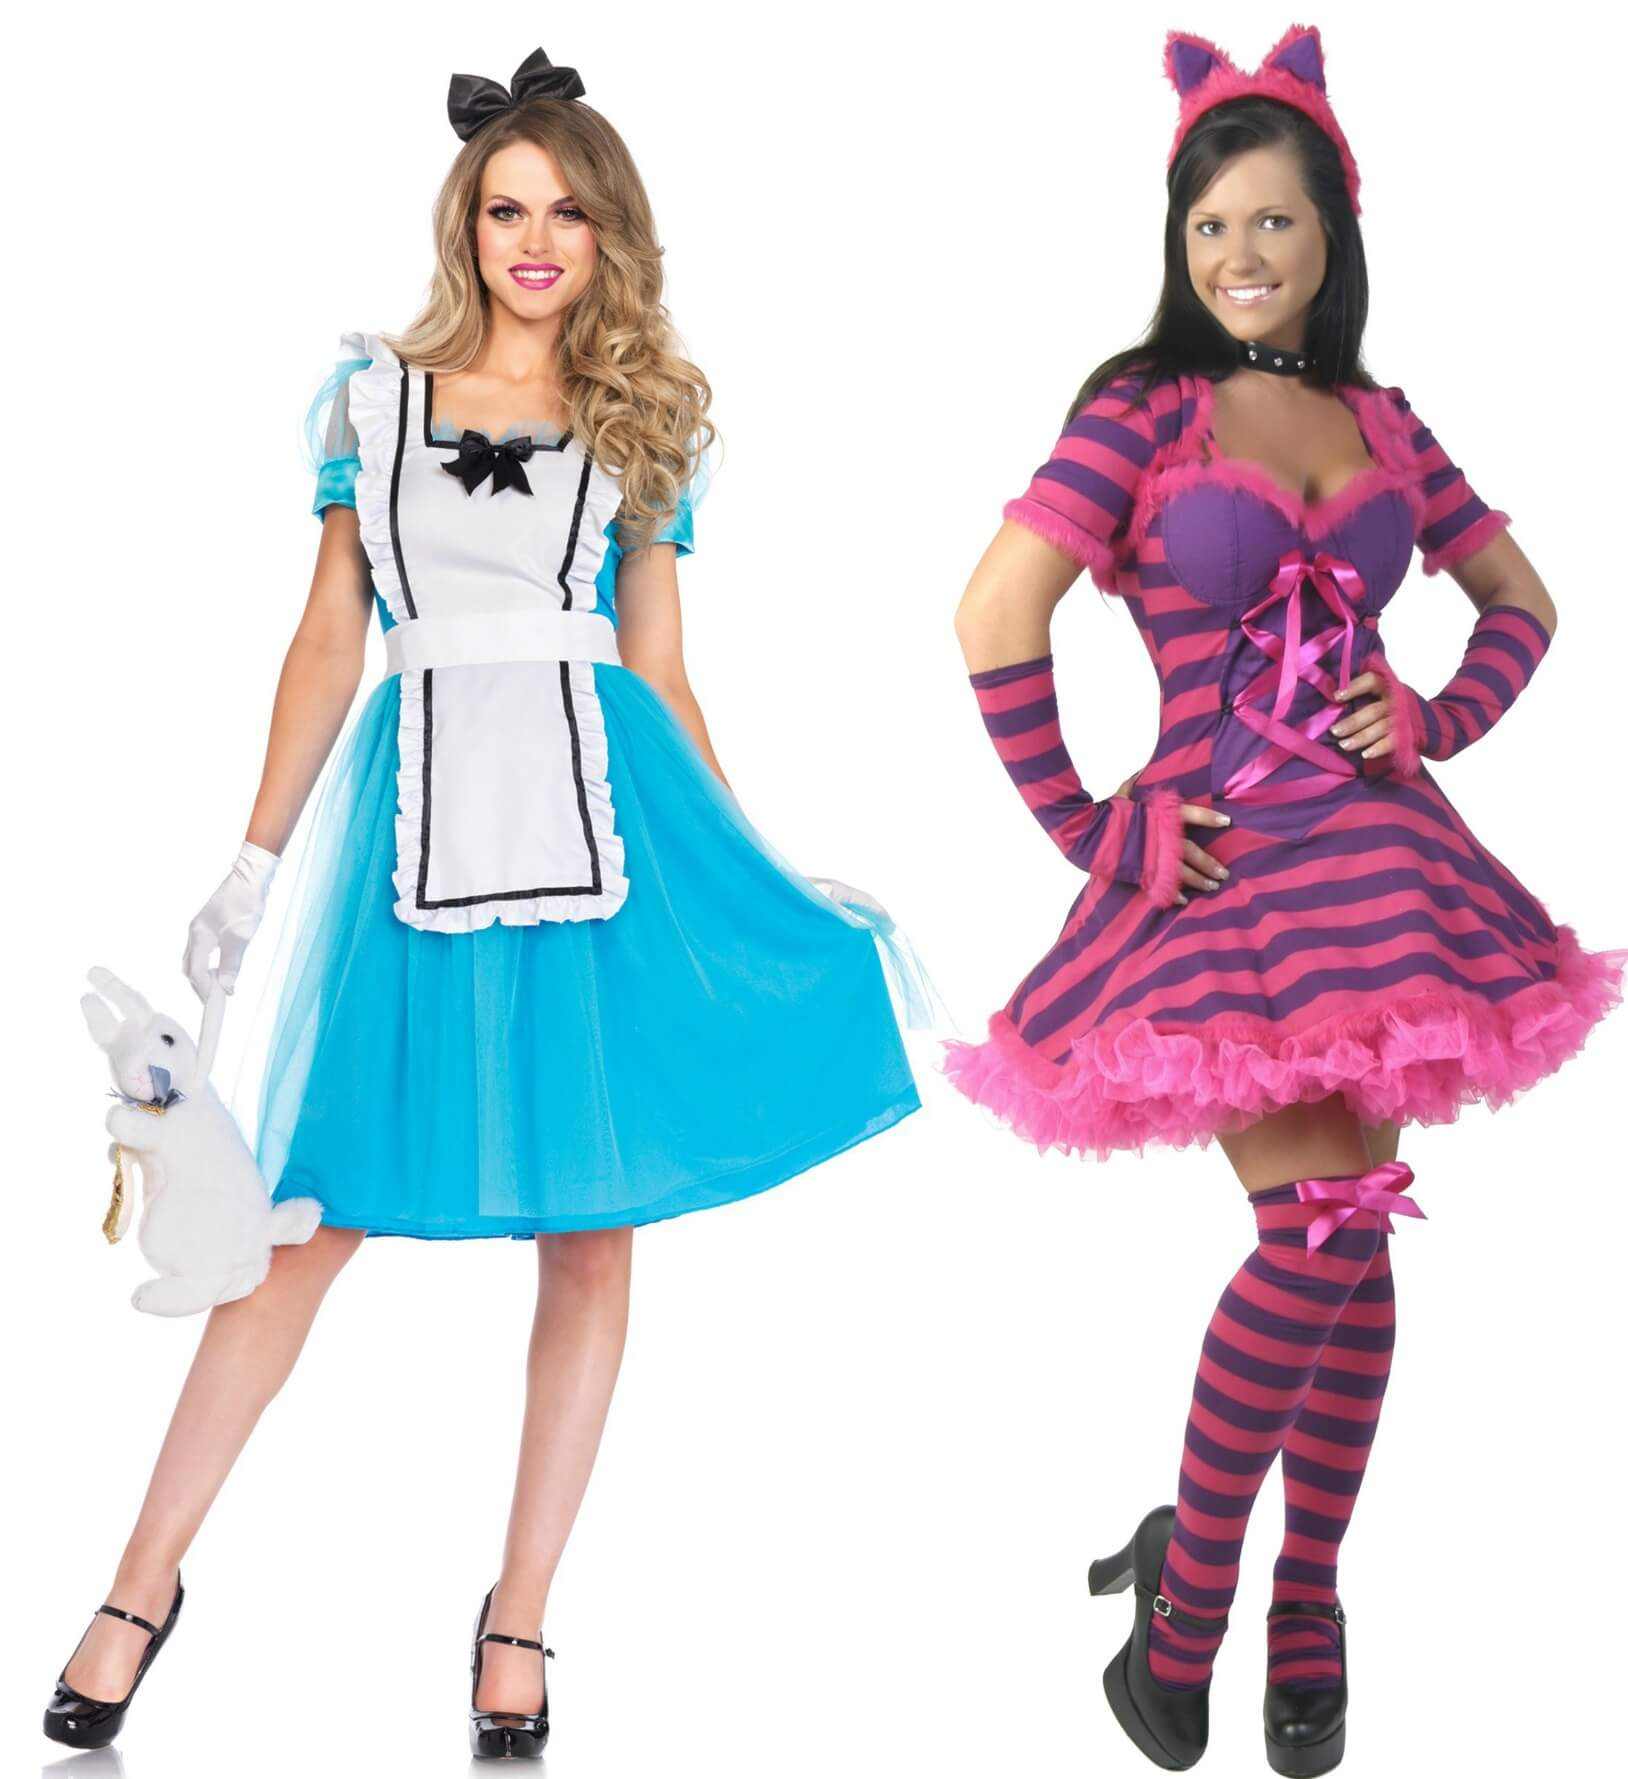 alice-and-cheshire-cat-bff-costumes  sc 1 st  Halloween Costumes & Costume Ideas for BFFs - Halloween Costumes Blog